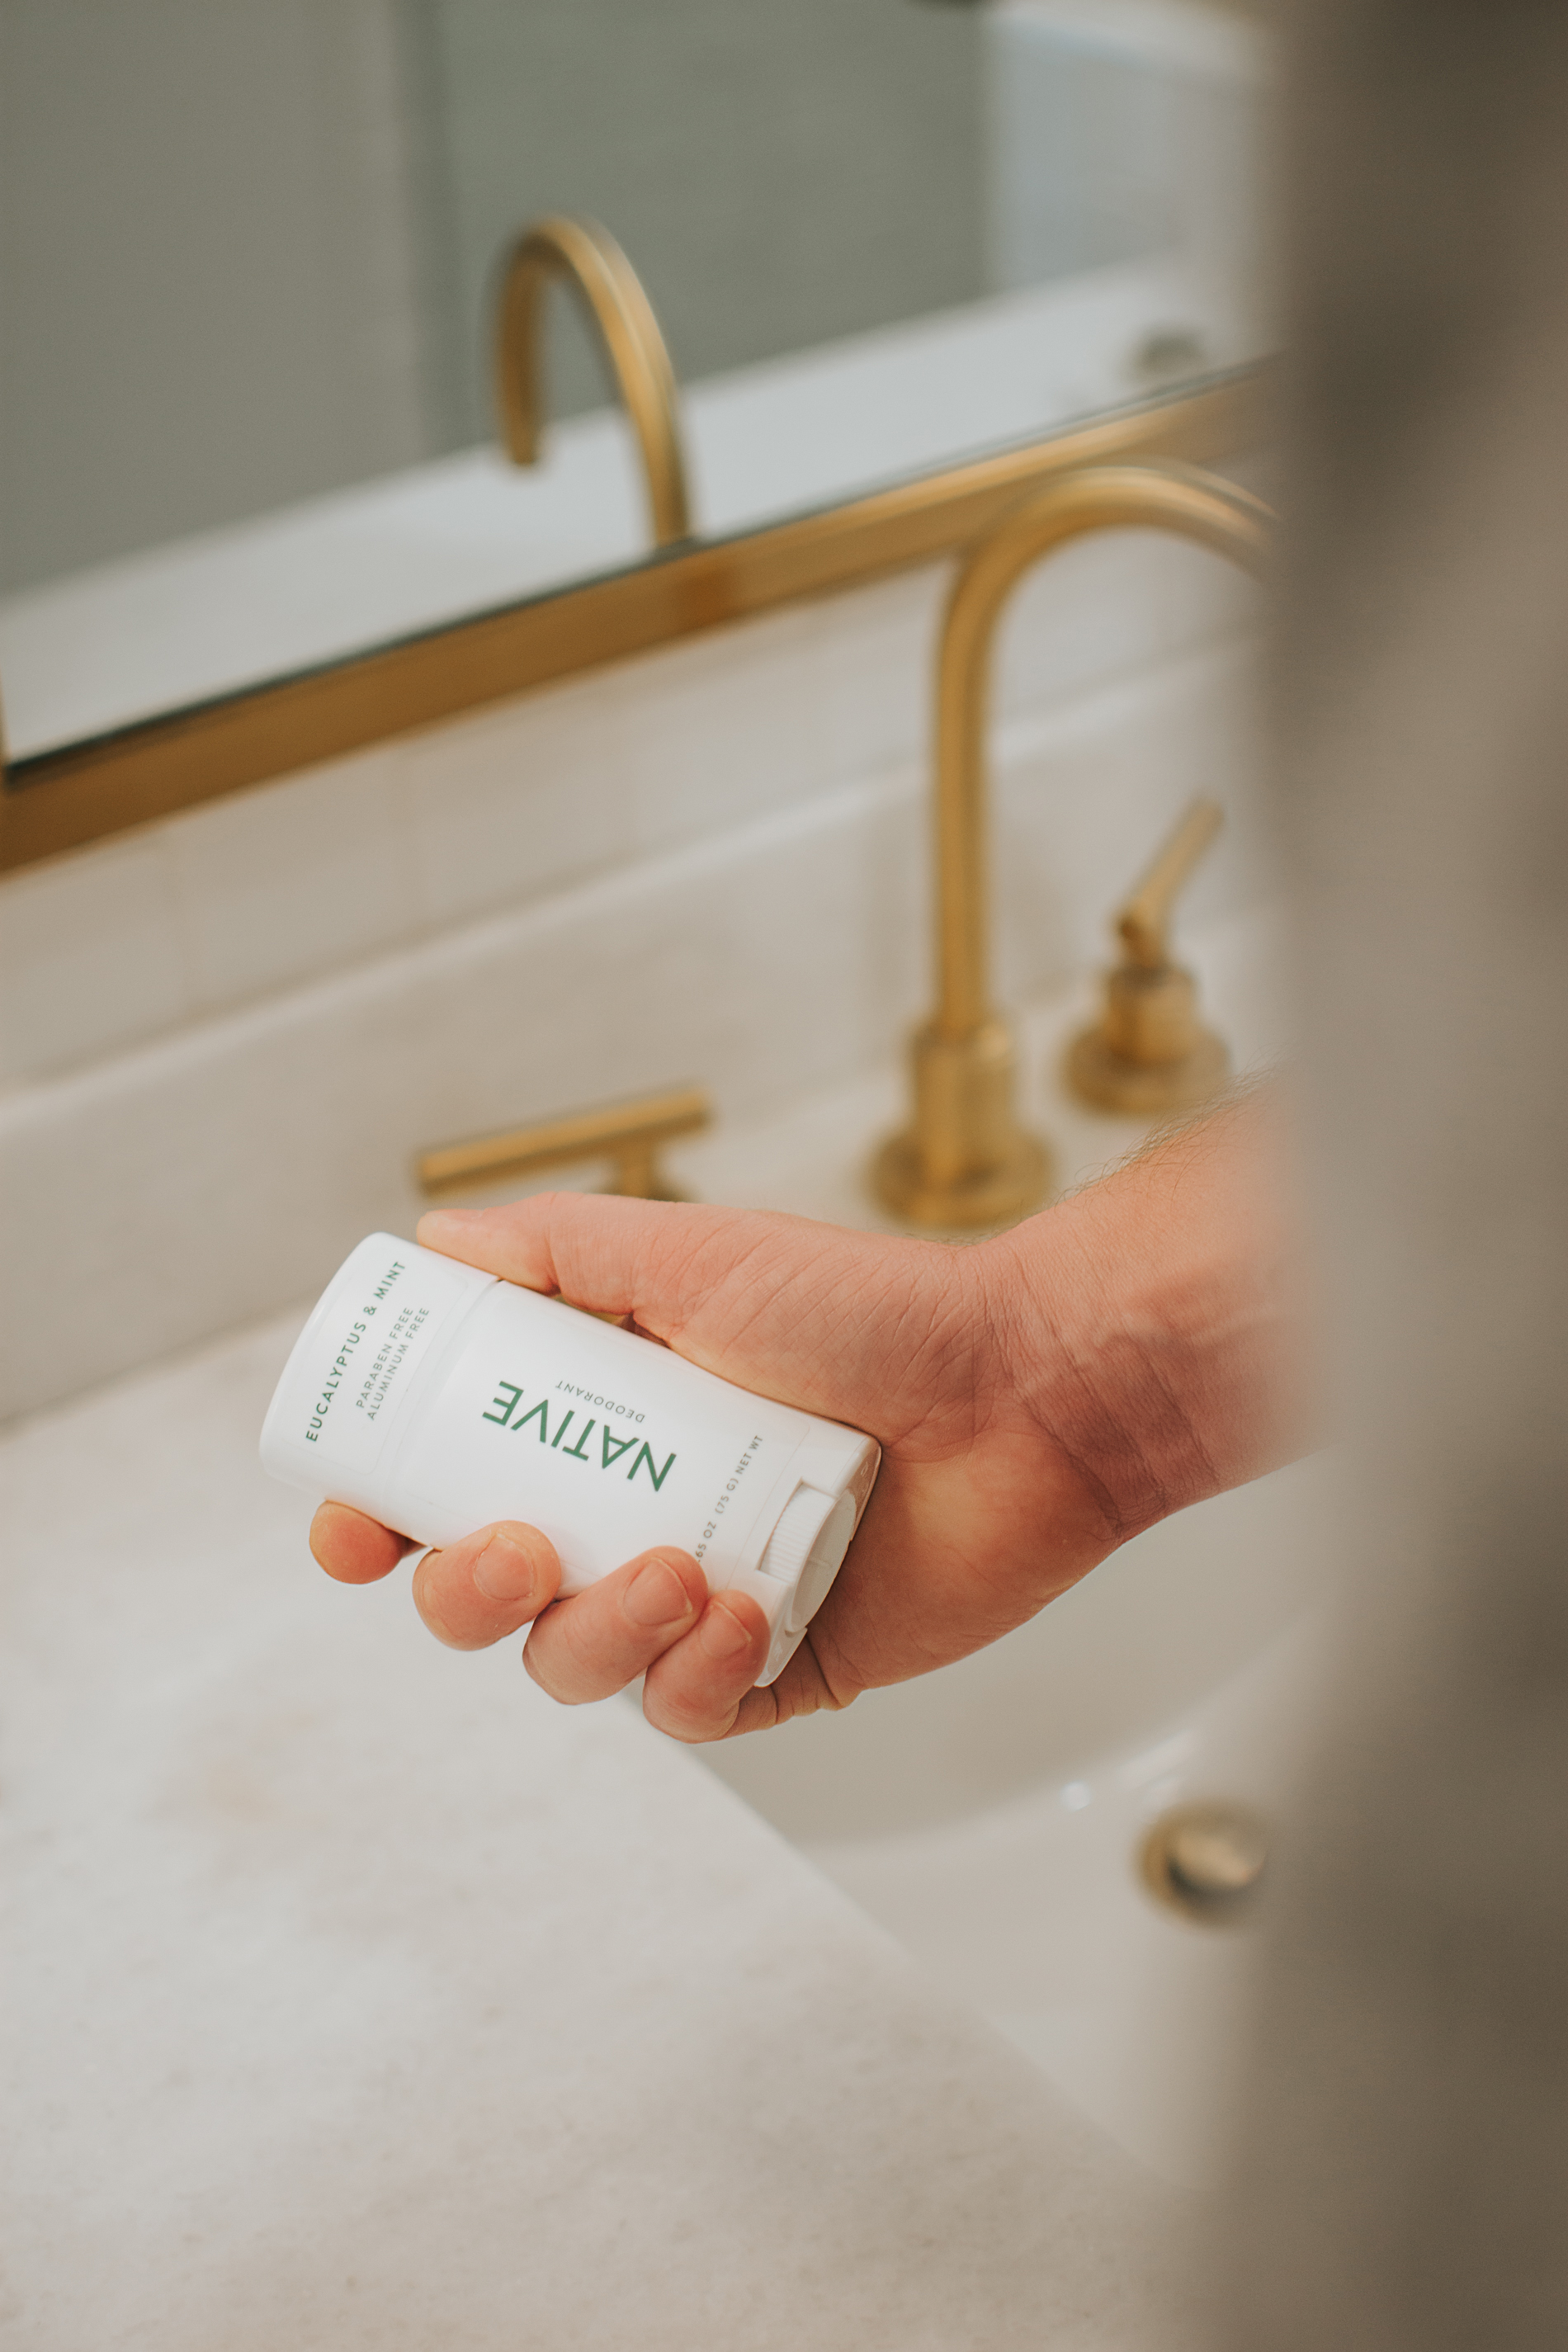 We've Made the Switch to Organic Deodorant‎ with Native via. The Pacific Standard | www.ThePacificStandard.com